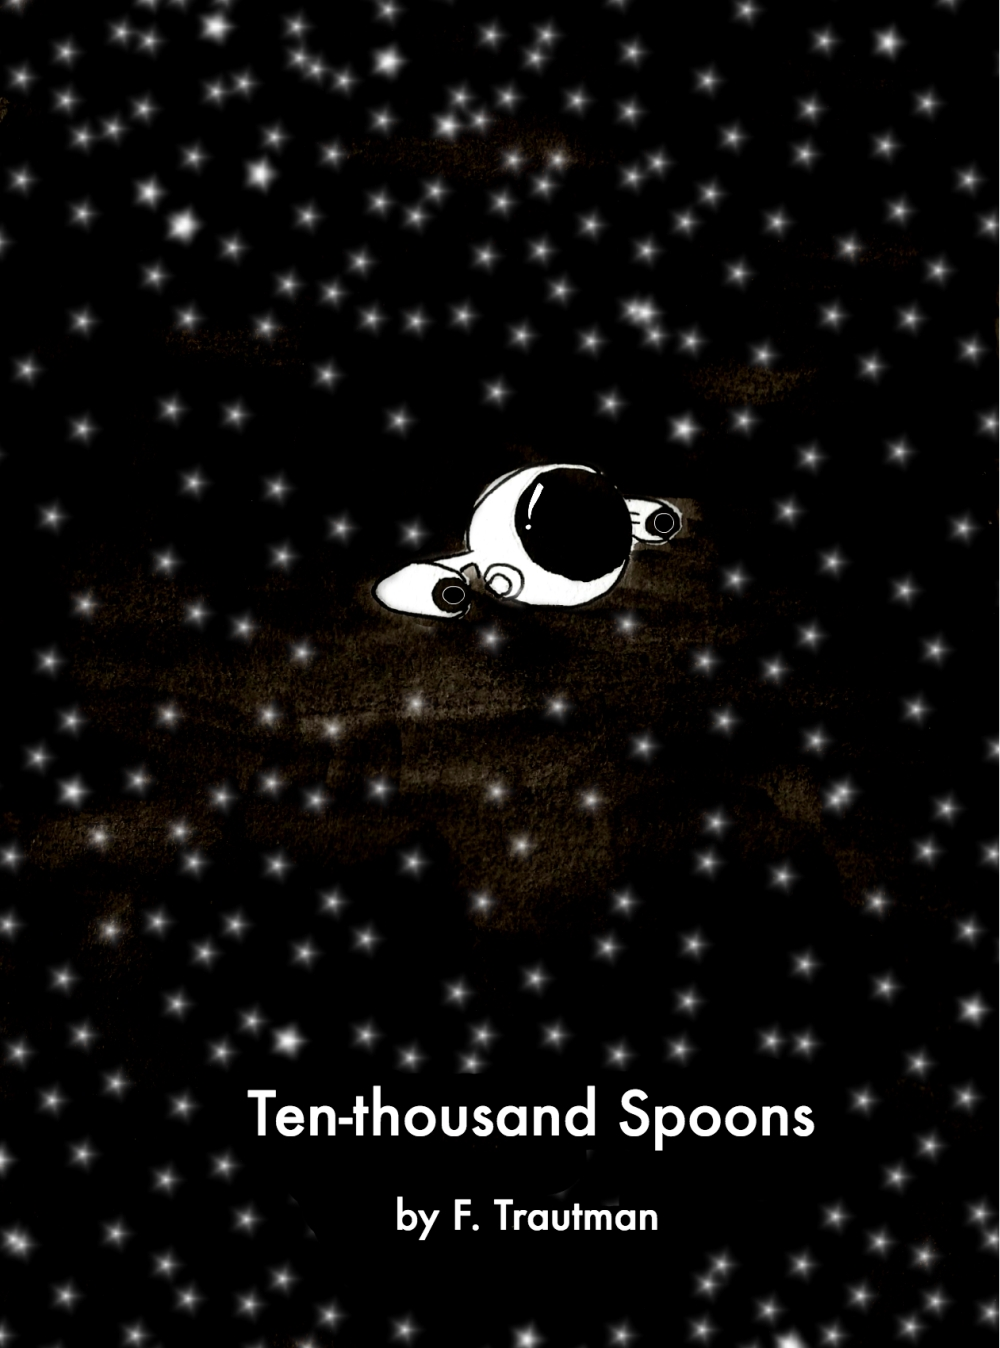 Ten-thousand Spoons